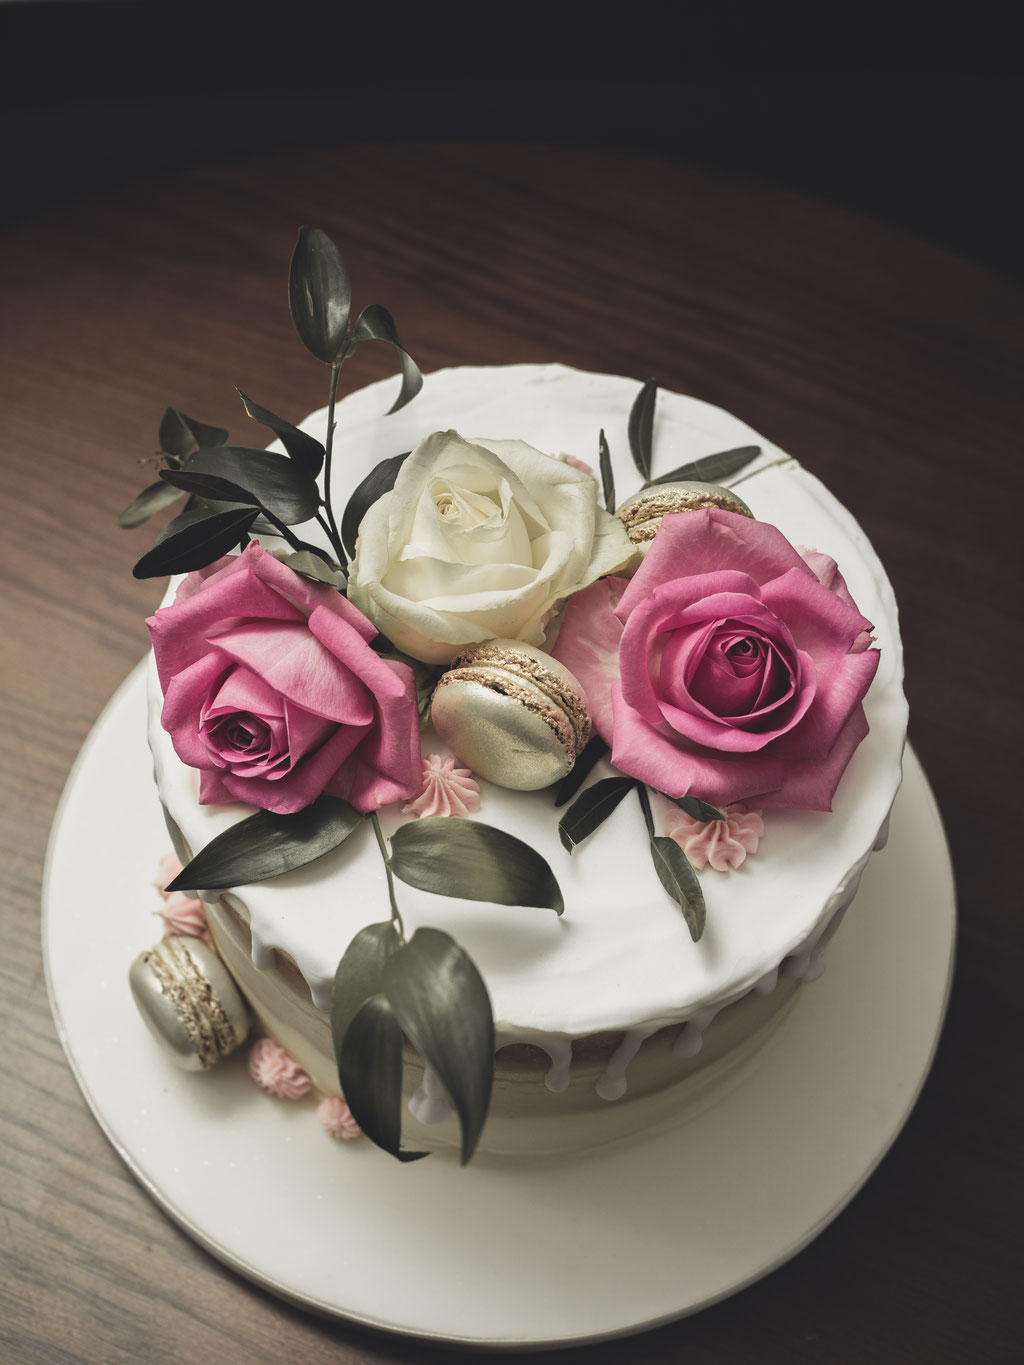 edinburgh wedding cake photographer